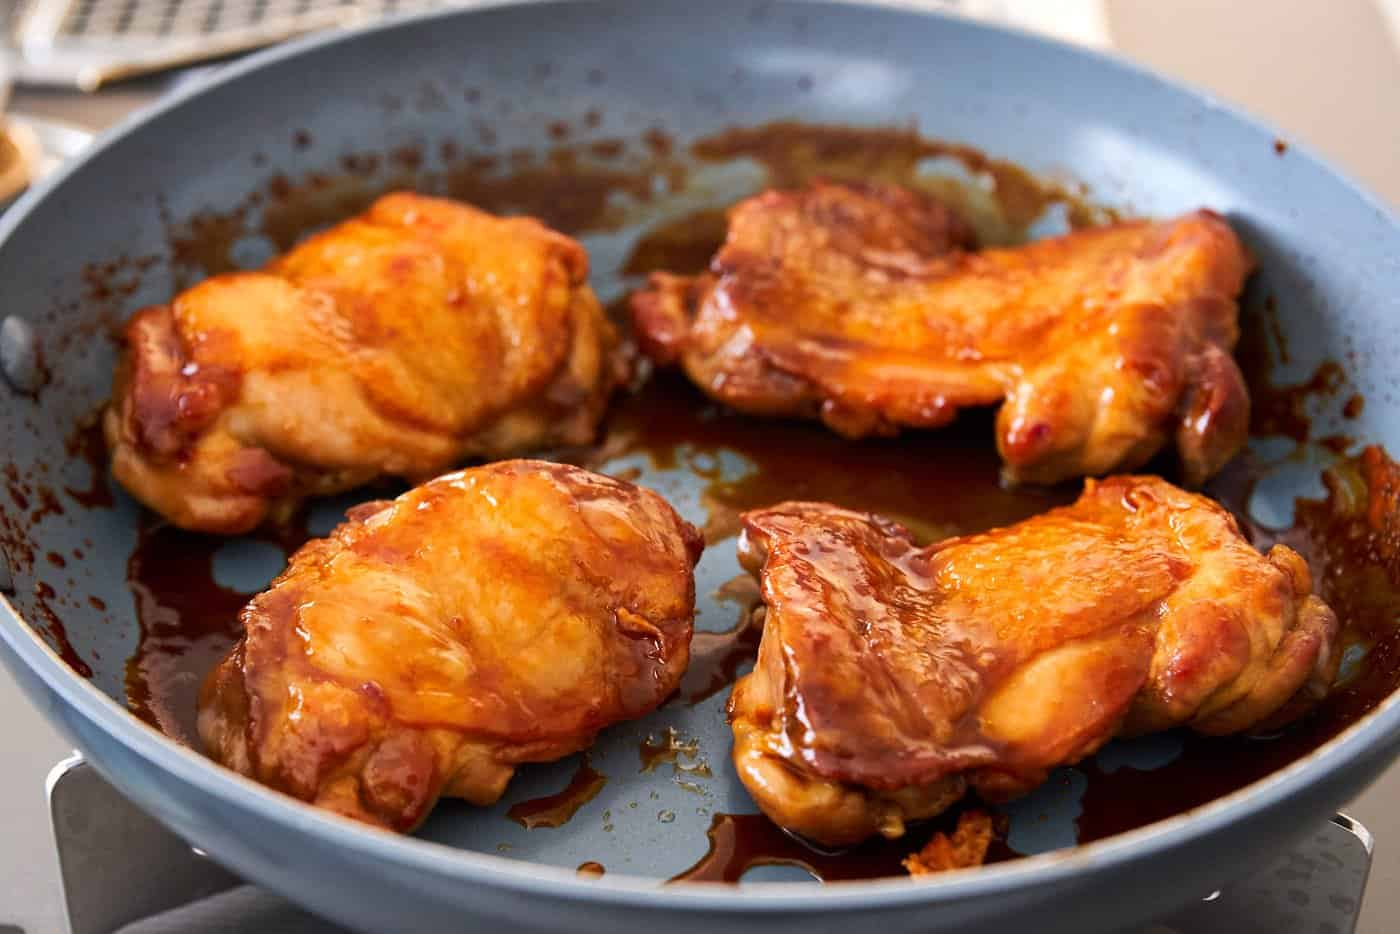 Authentic Chicken Teriyaki has just 4 ingredients and should result in glossy chicken glazed with sauce.